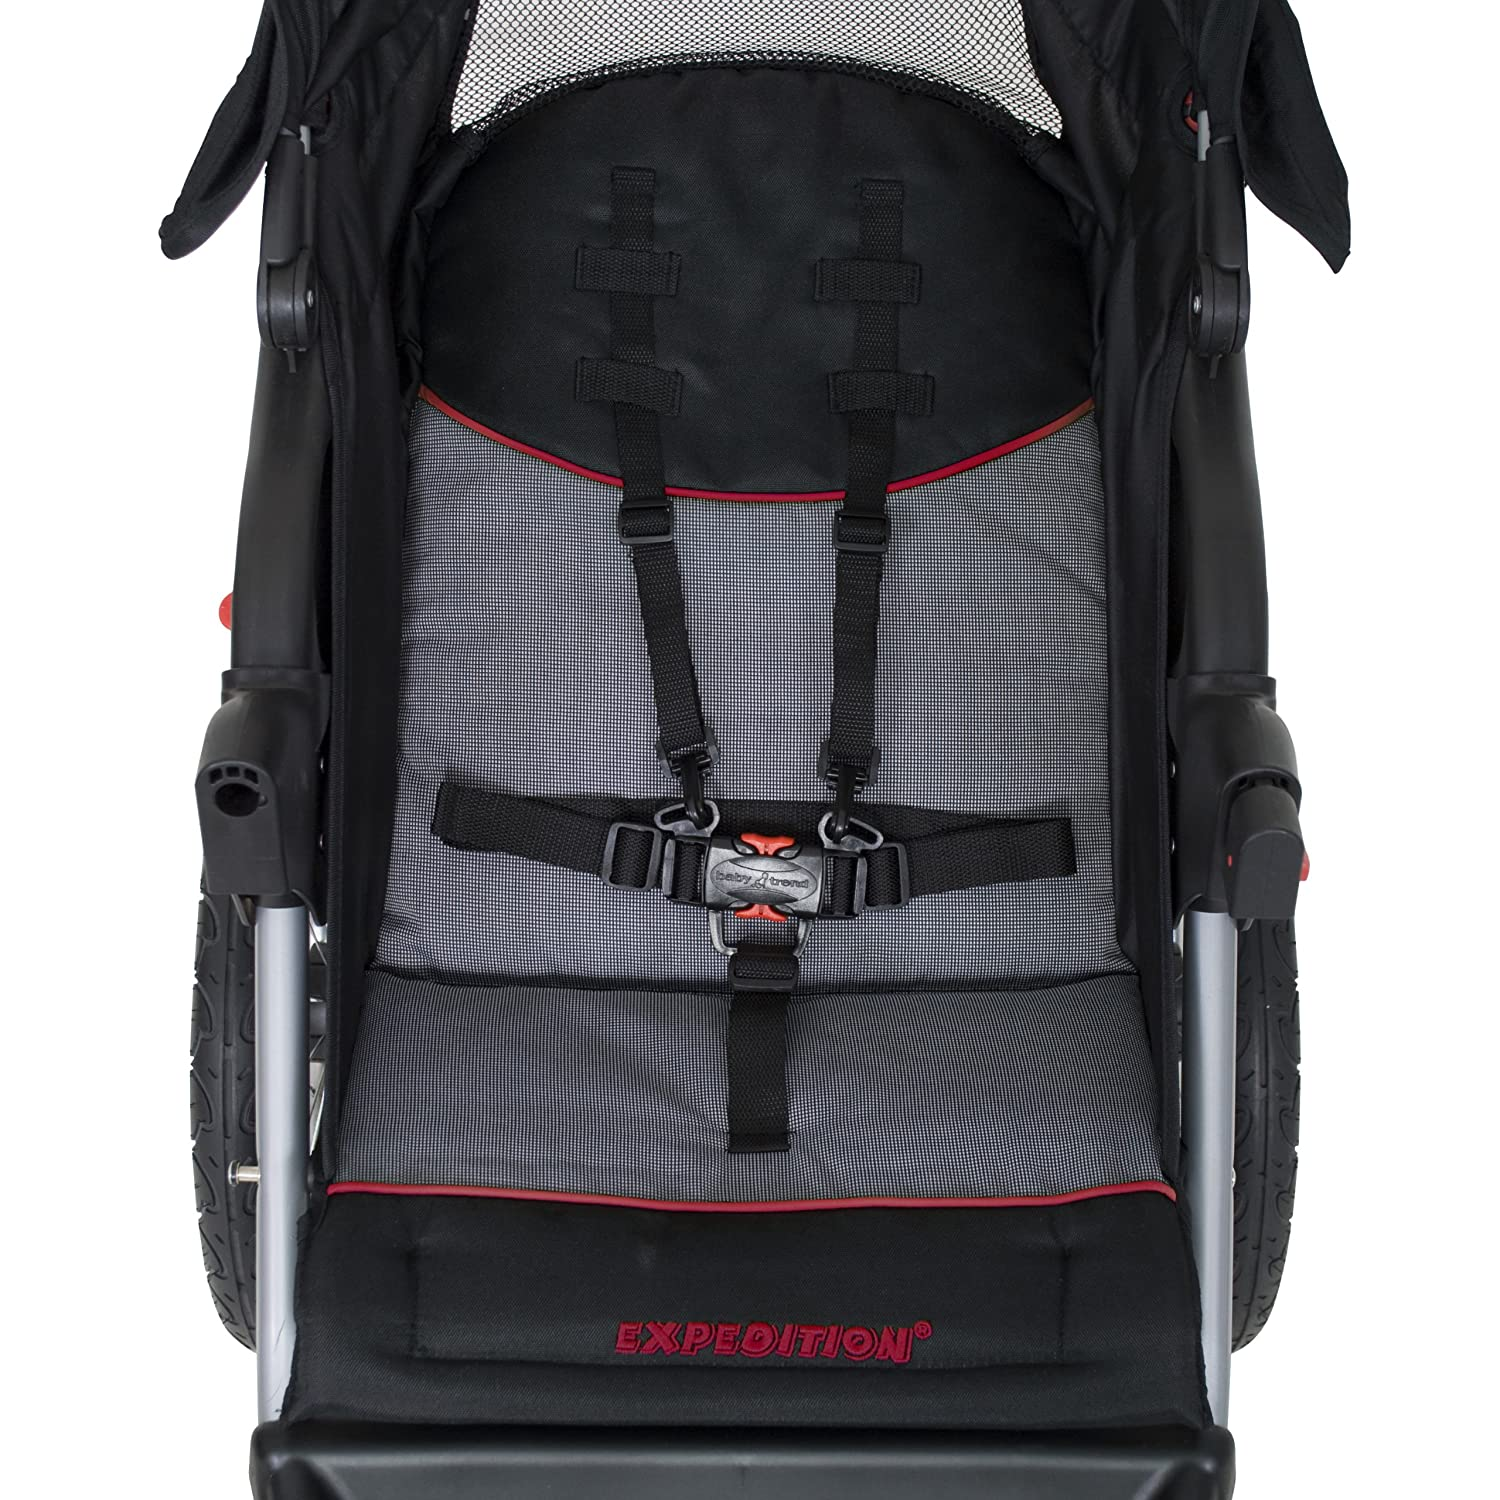 Baby Trend Expedition Lx Travel System Back Infant Car